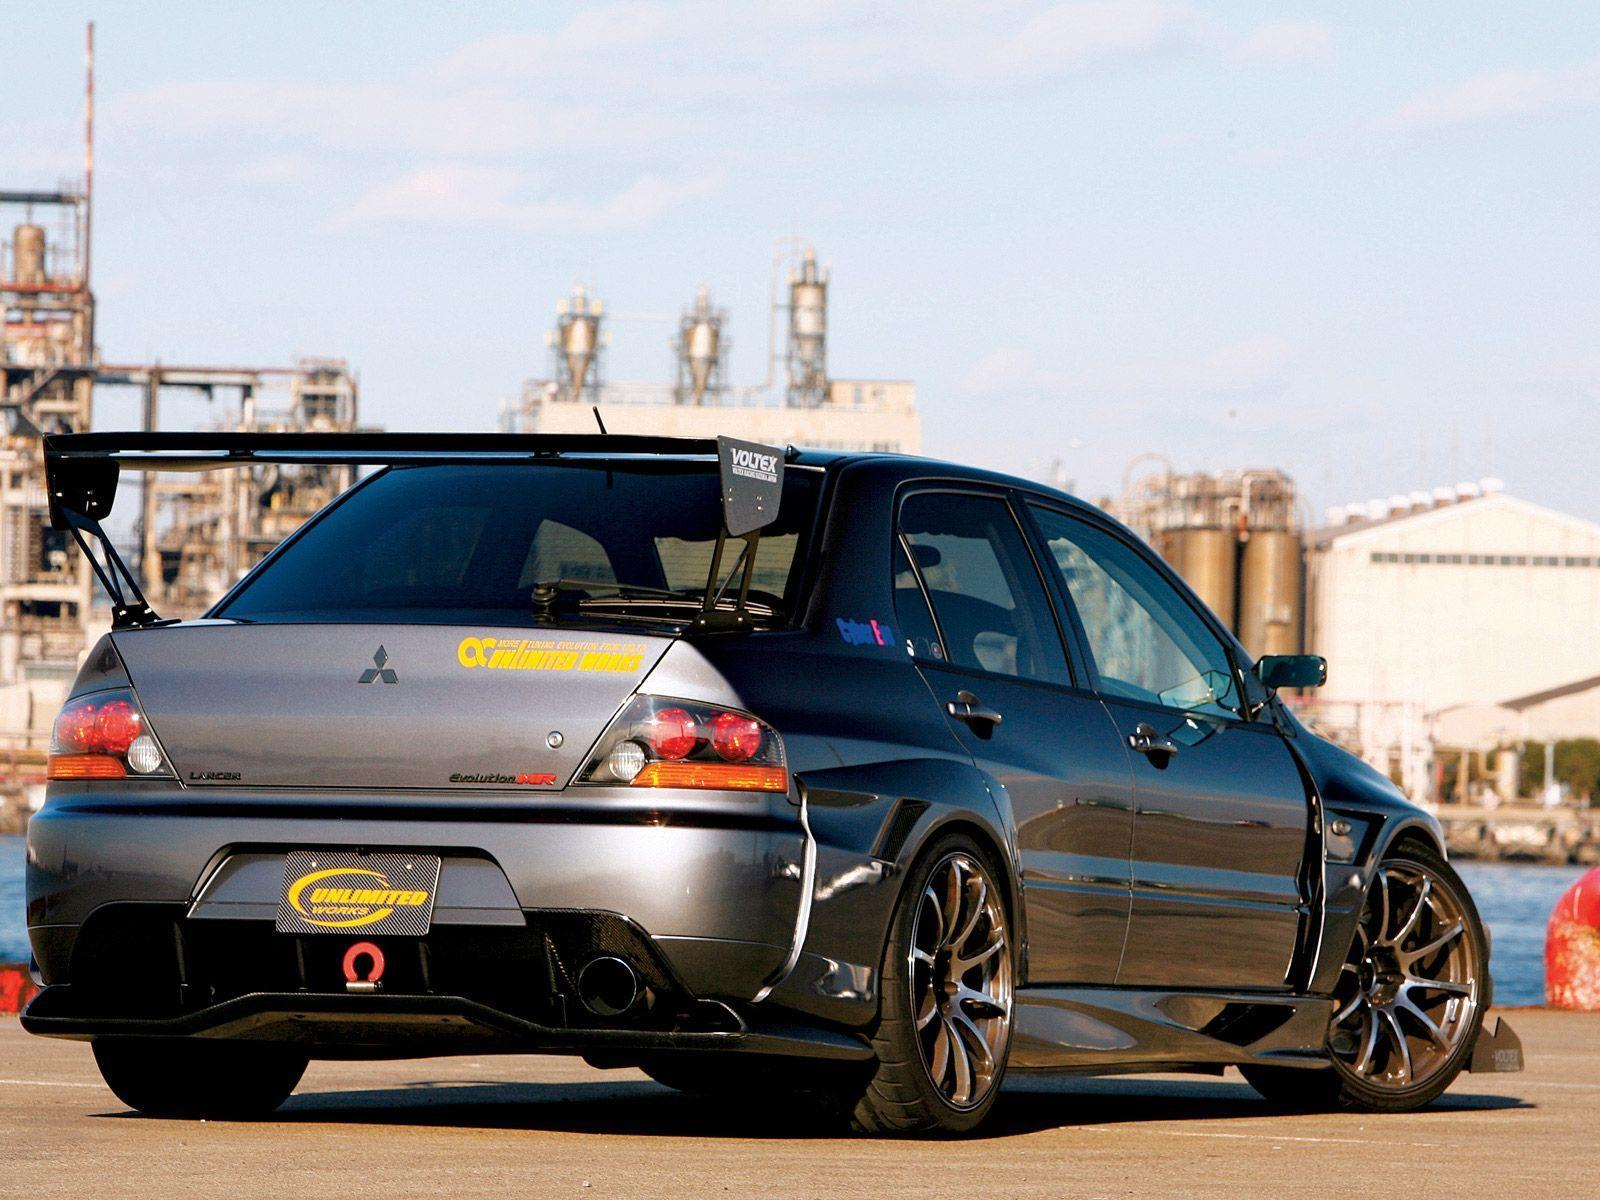 Mitsubishi Evo Viii Wallpaper | PicsWallpaper.